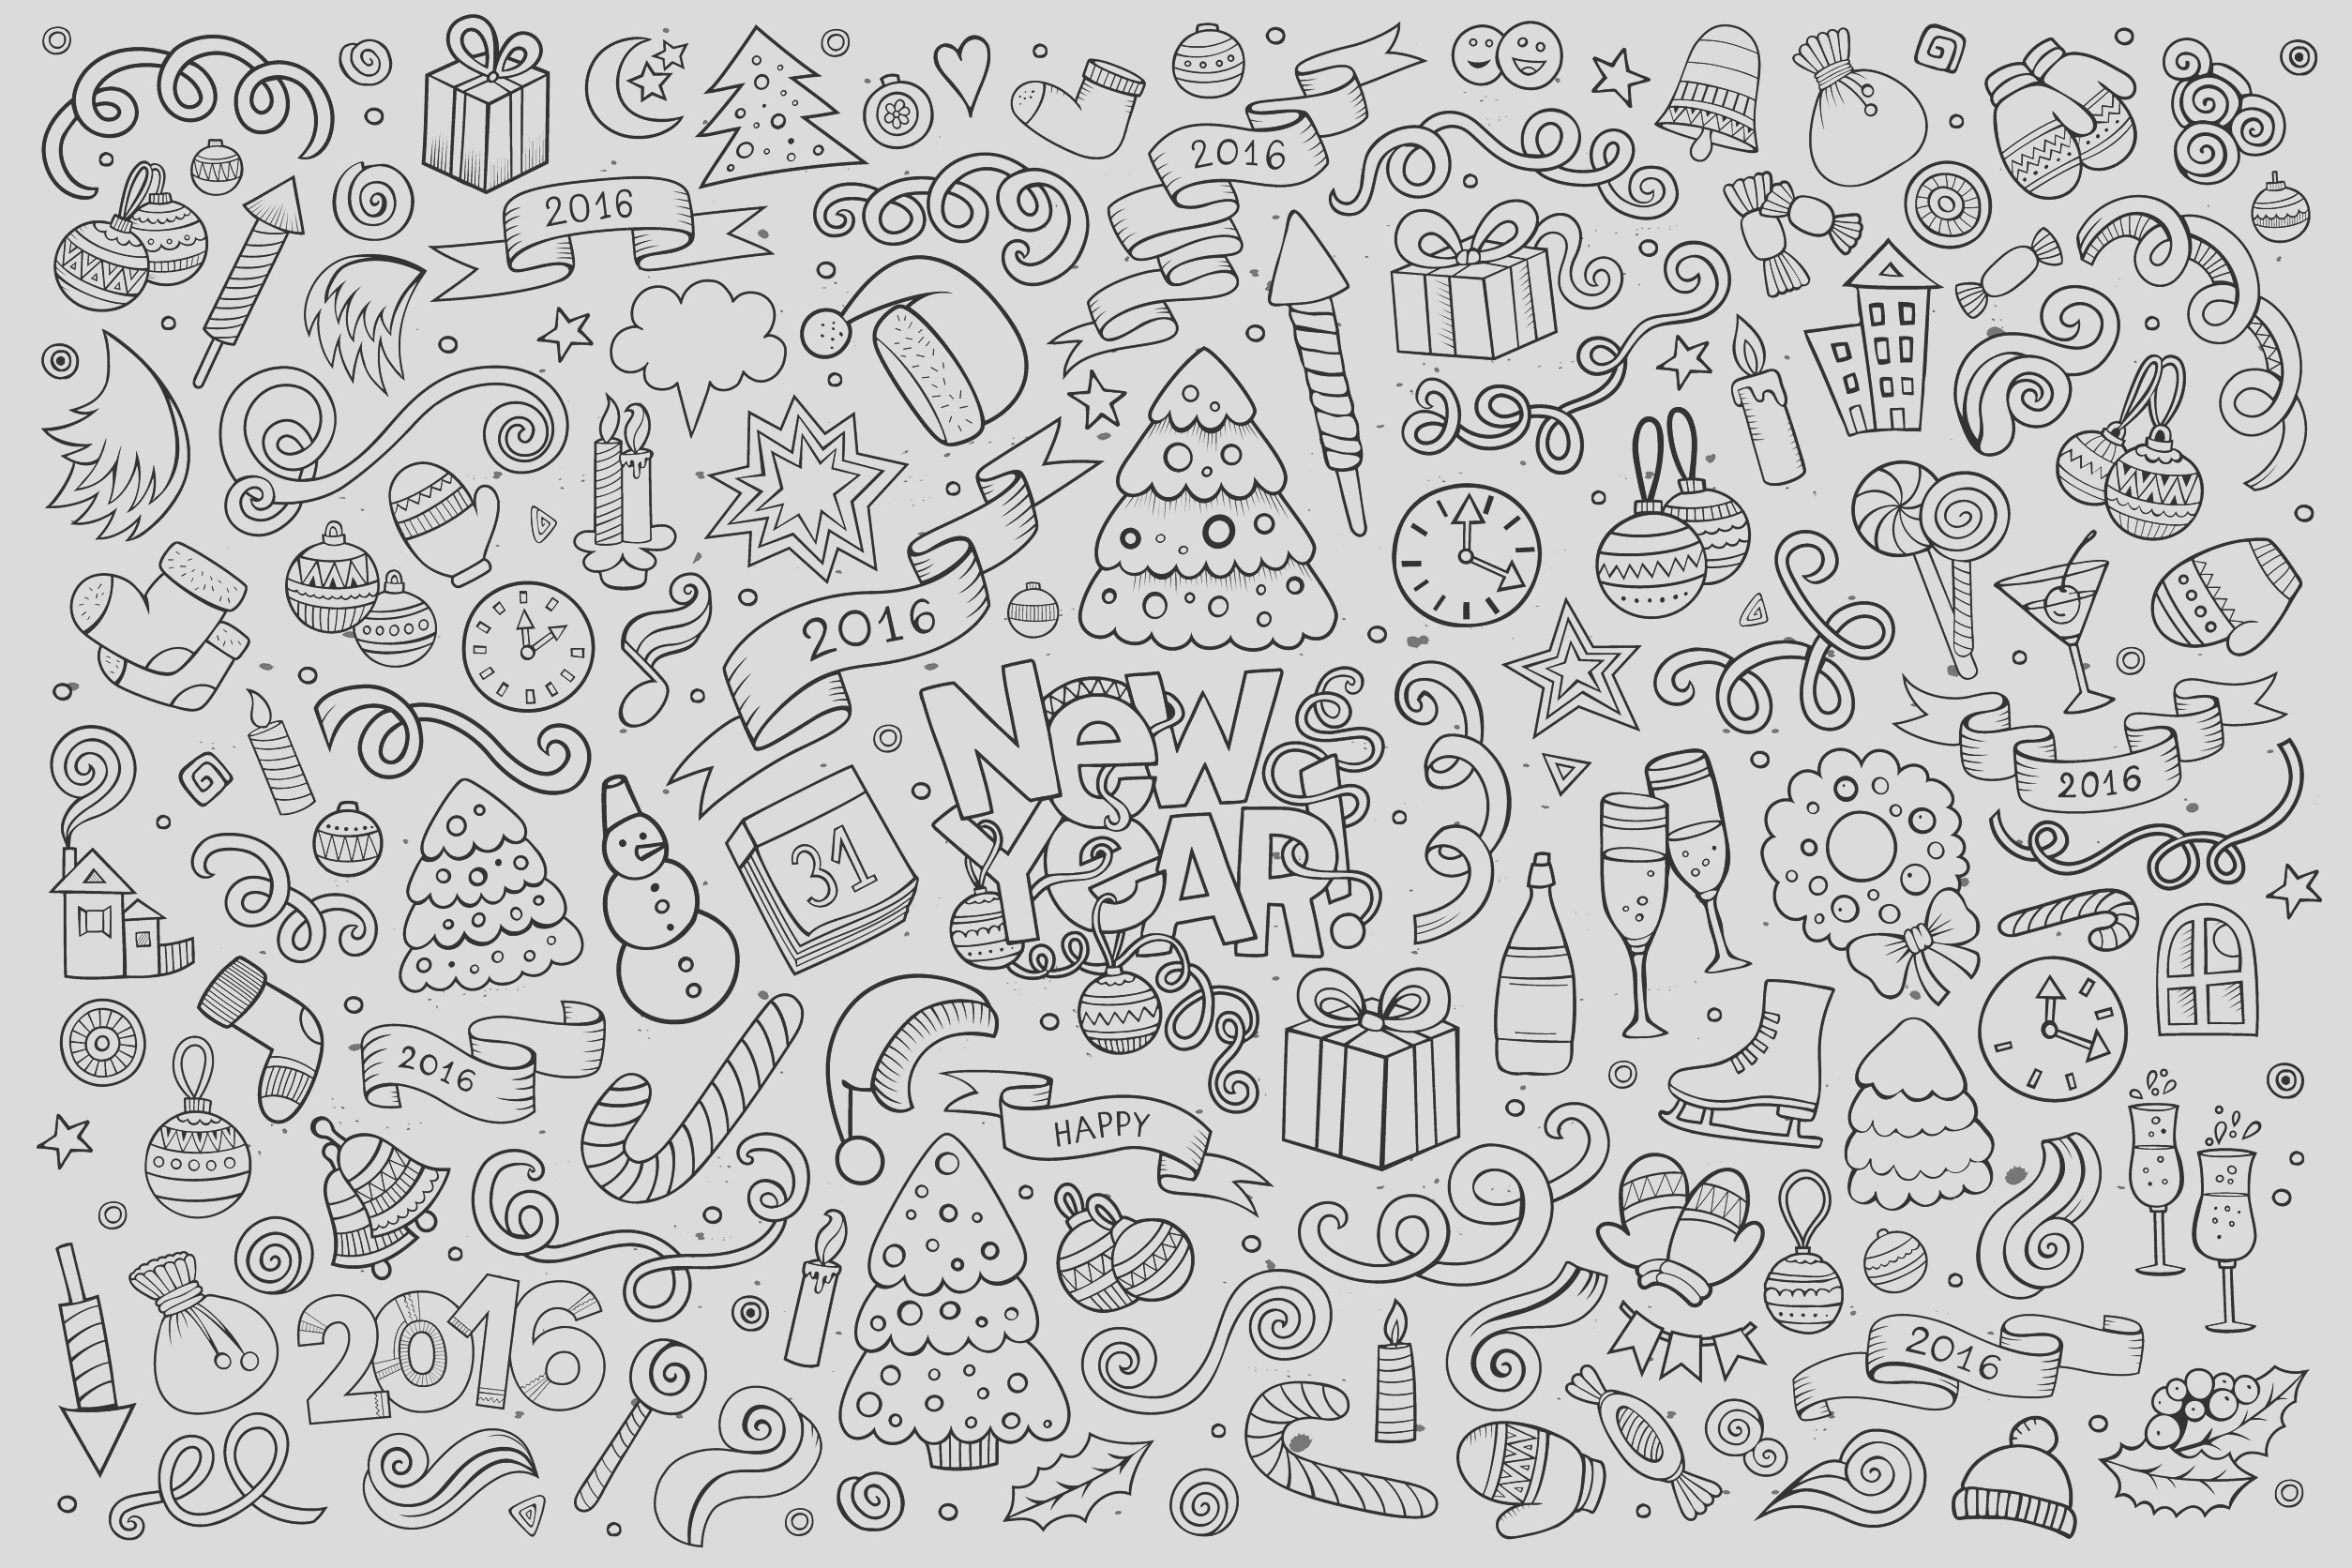 image=doodle art doodling coloring doodle happy new year 2016 by balabolka 1